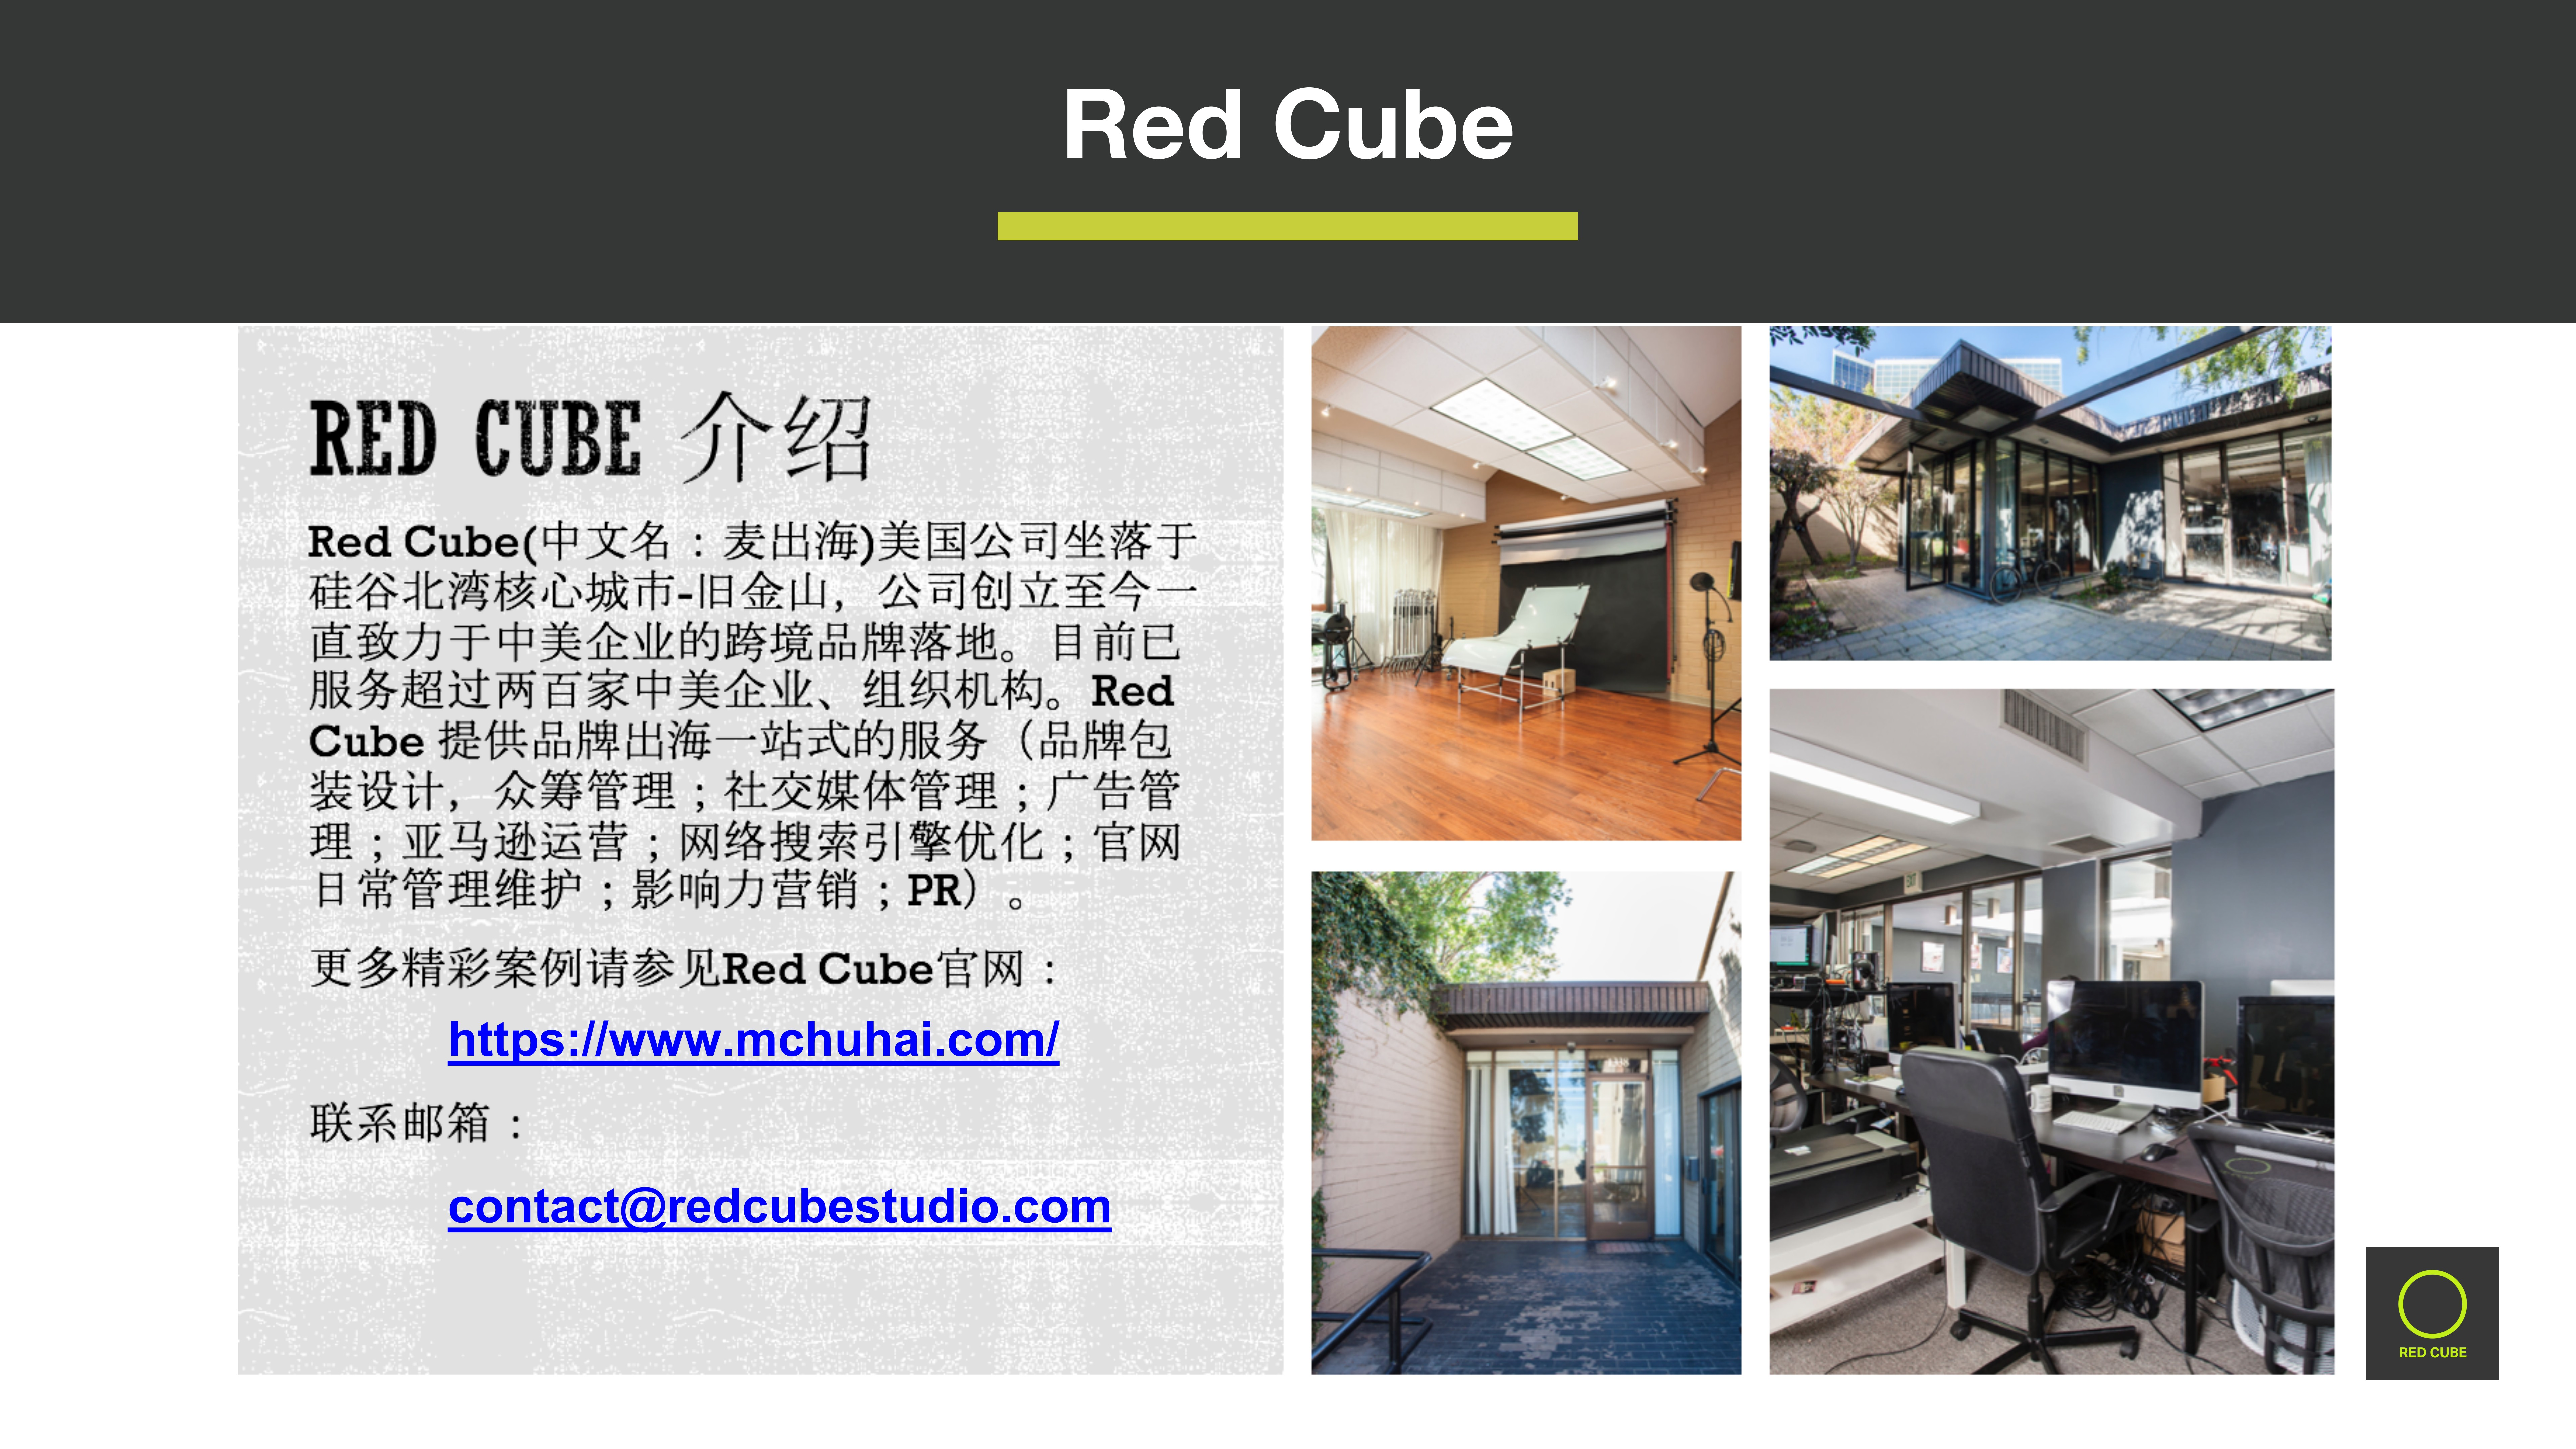 Red Cube Digital Marketing Case Study.pdf.174a6dd92819fc4151d94593e295ab8b.20191226112240511_14.jpg